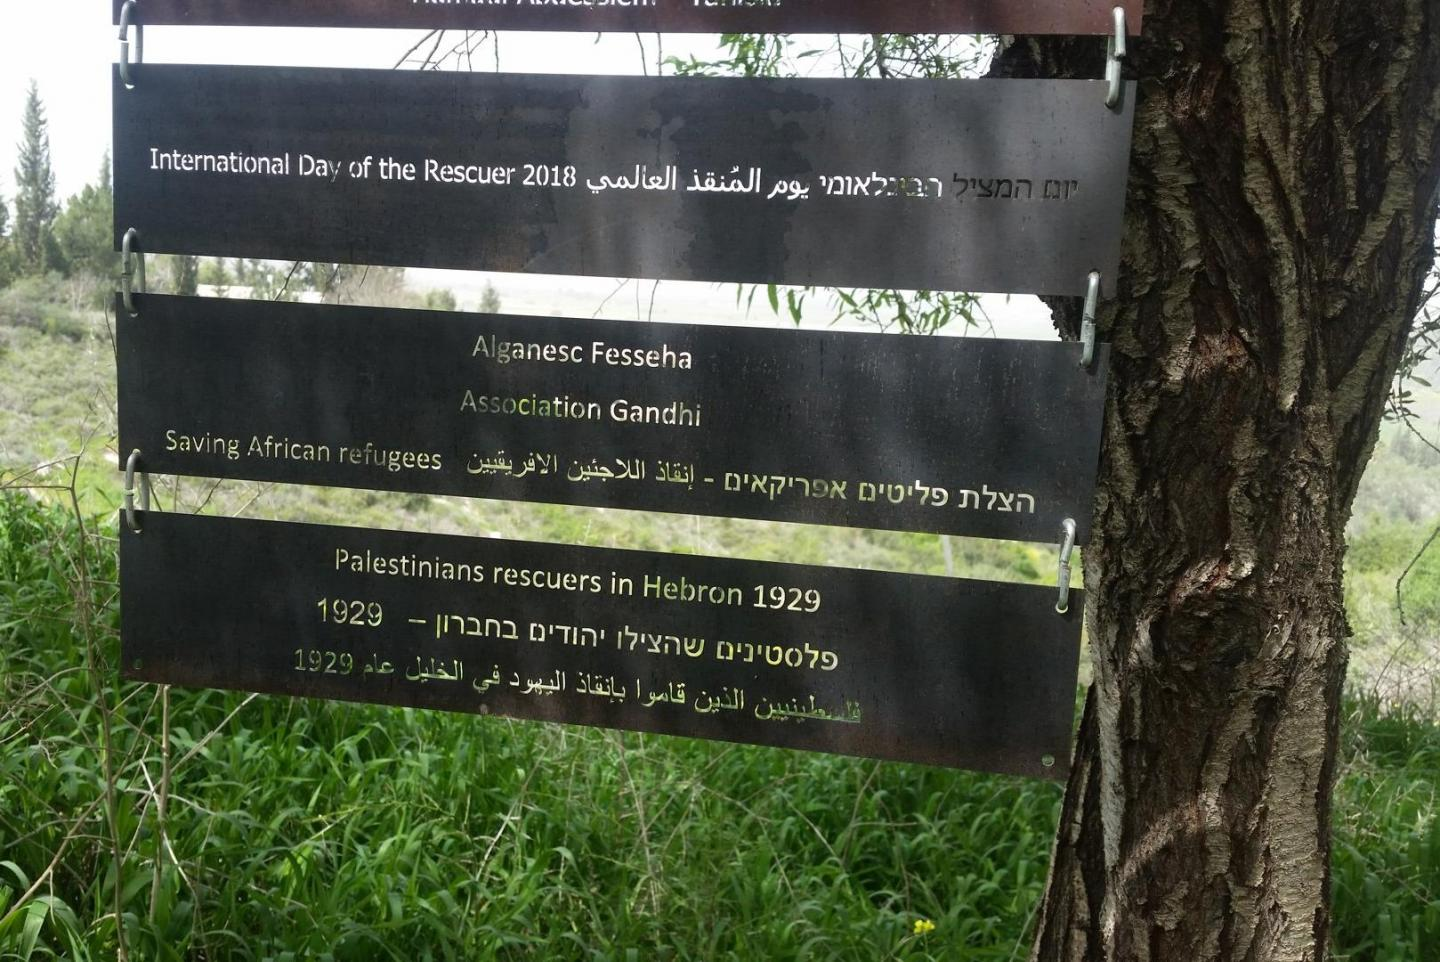 The Righteous honoured: Alganesh Fessaha and the Palestinians who saved the Jews during the massacre of Hebron